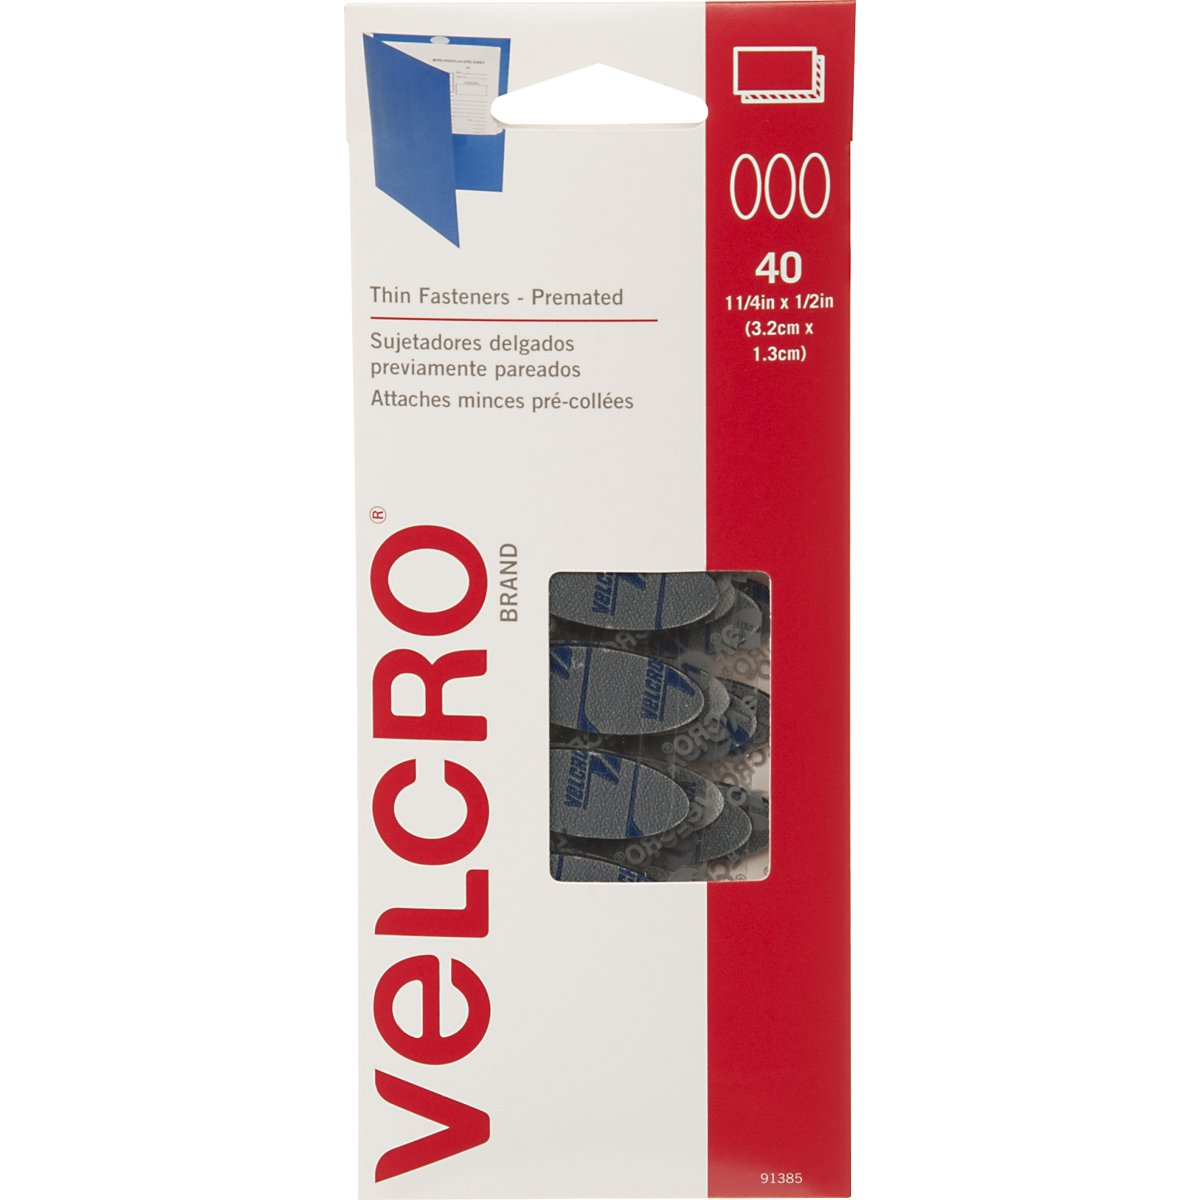 VELCRO Brand - Thin Fasteners - Premated - Ovals, 40 Sets - Black Velcro USA Inc. 91385